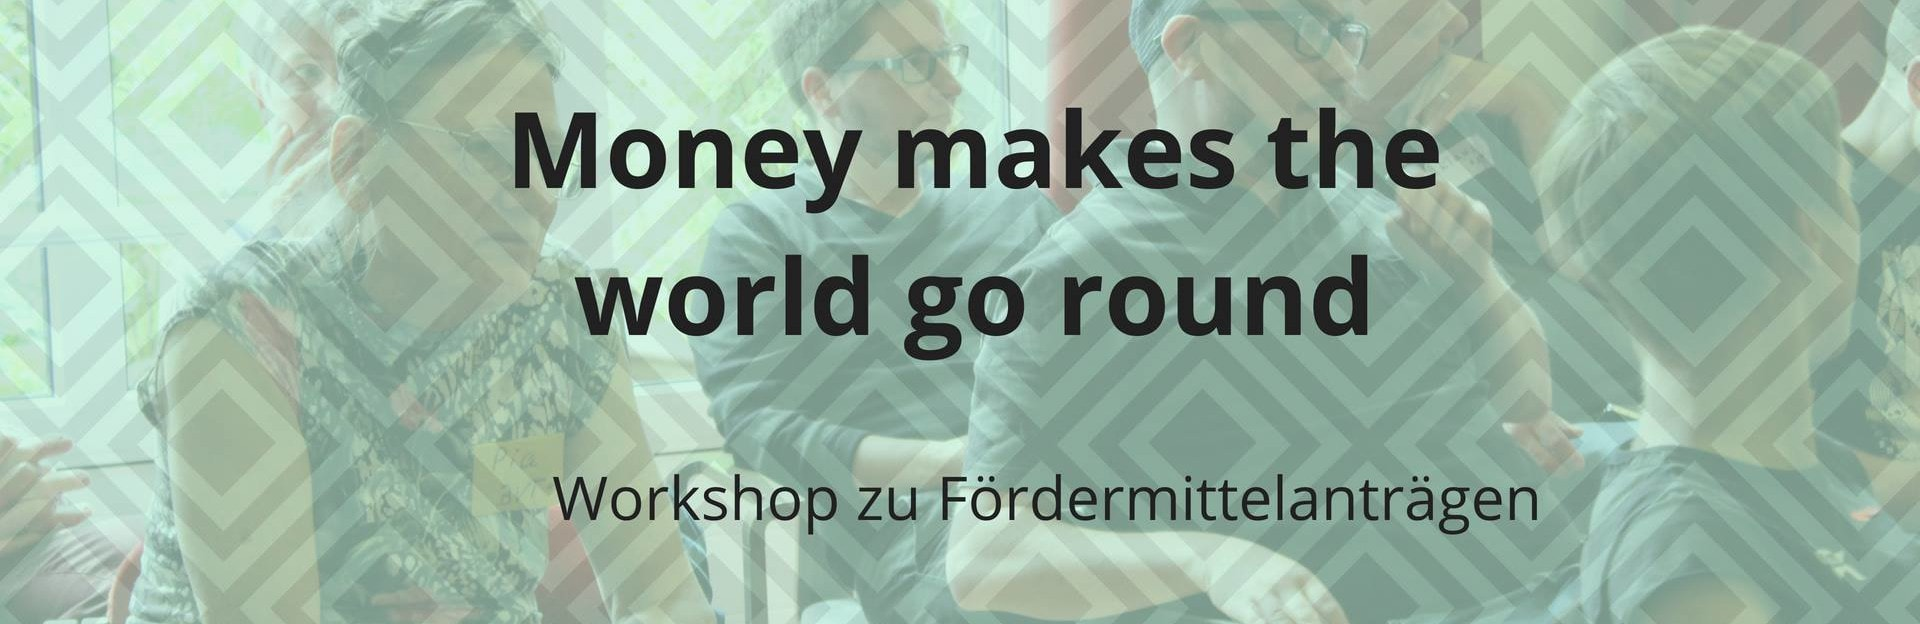 """Money Makes The World Go Round"" – Workshop Zu Fördermittelanträgen 25. Mai 2019 Berlin"